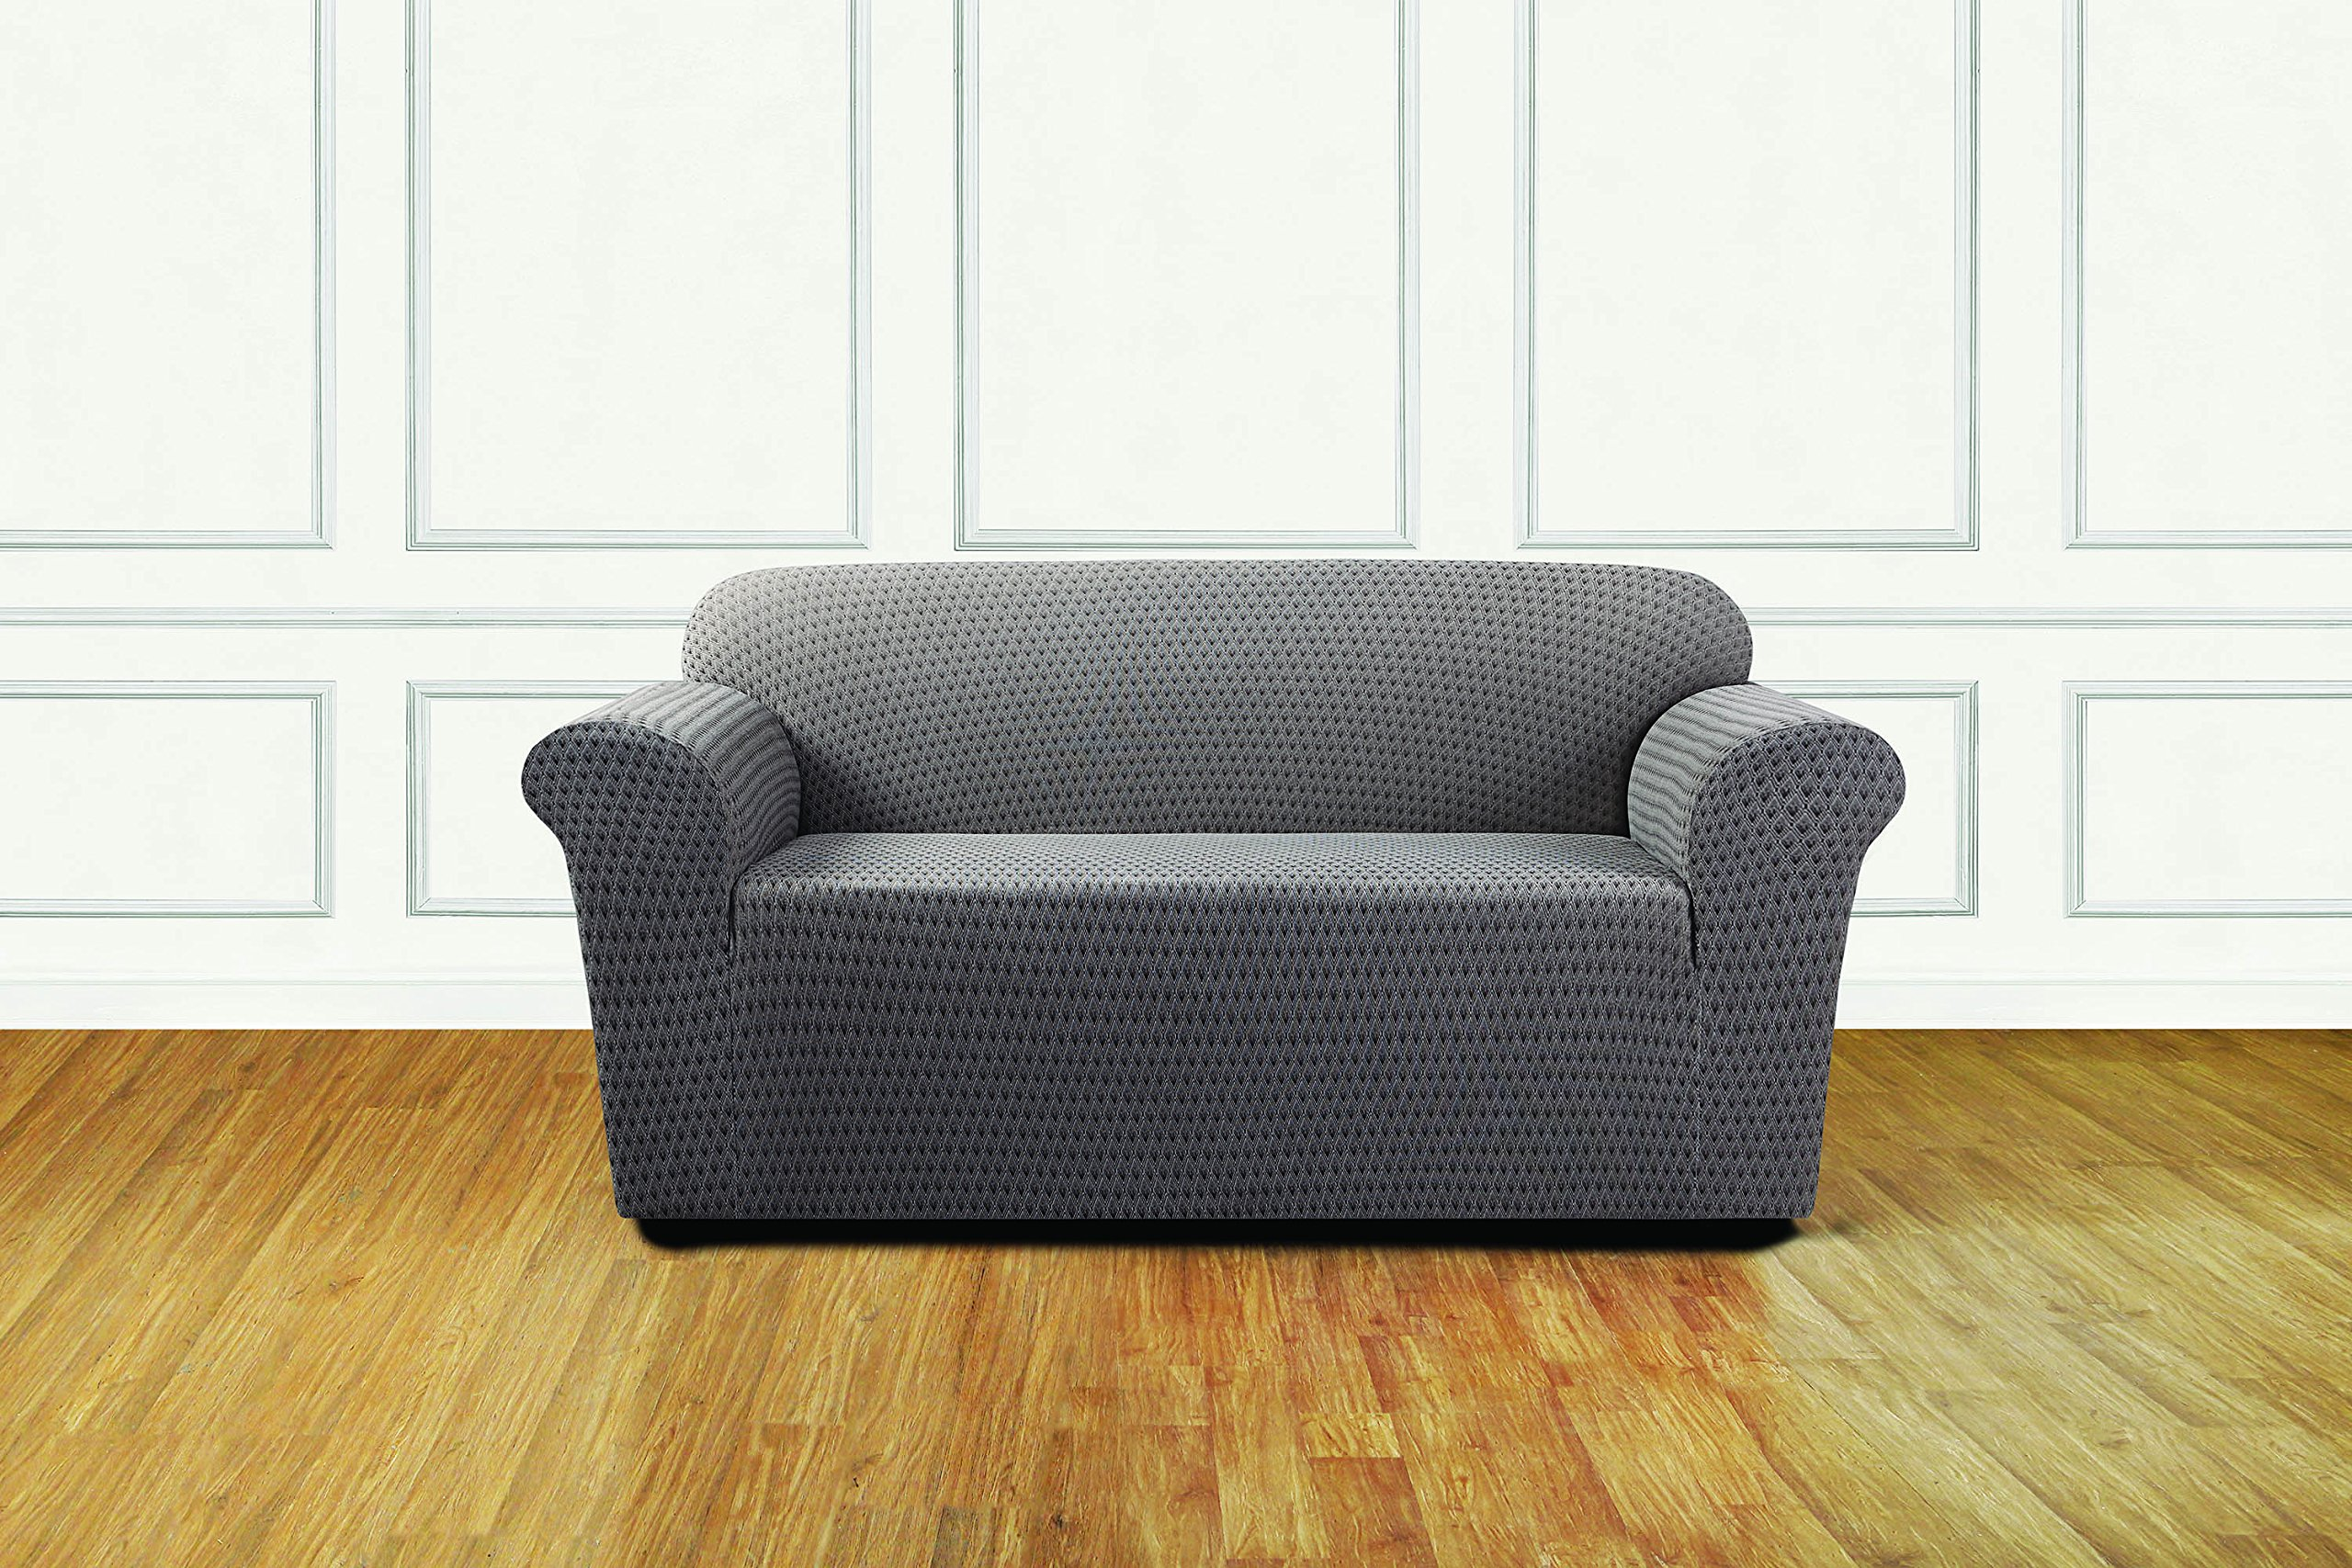 Sure Fit Stretch Sonya 1-Piece - Loveseat Slipcover  - Birch/Timber (SF45940) by Surefit (Image #3)